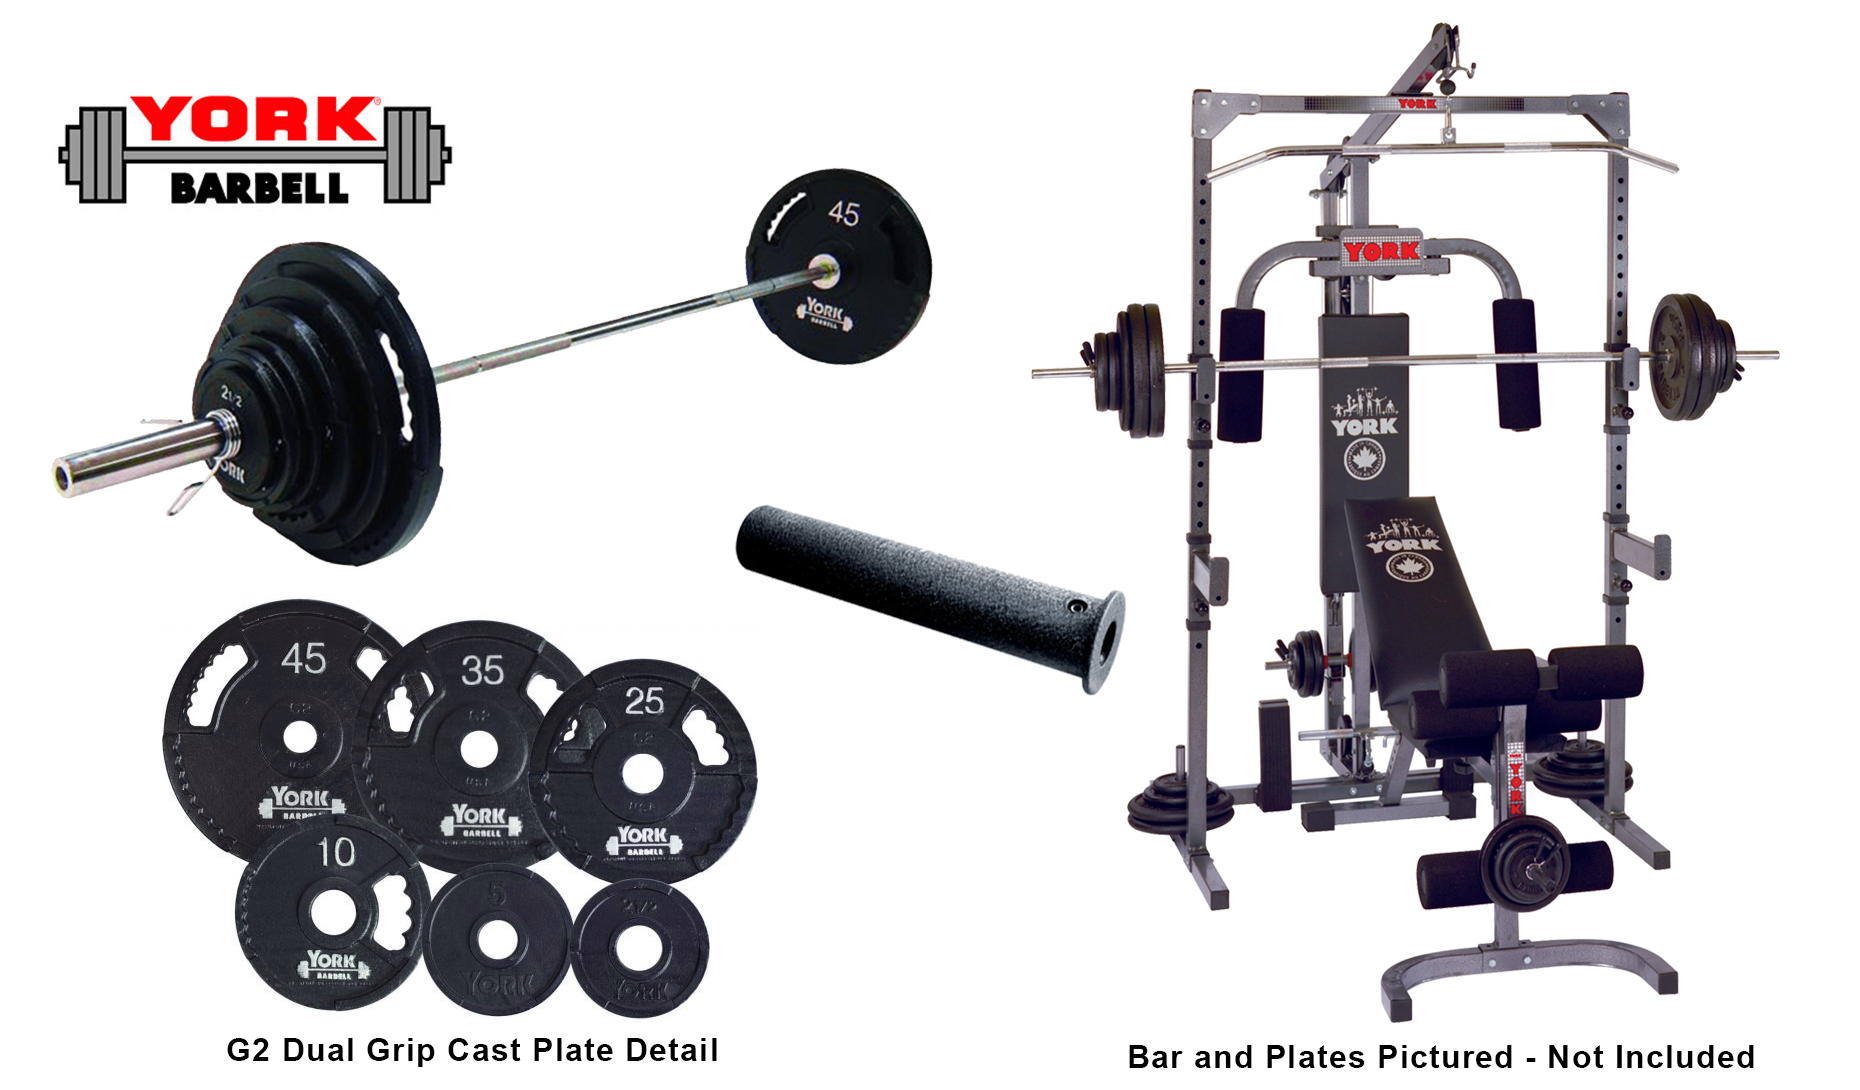 bb2e4e7609d Basic Training Power Cage With Pulley and Barbell System - York Barbell